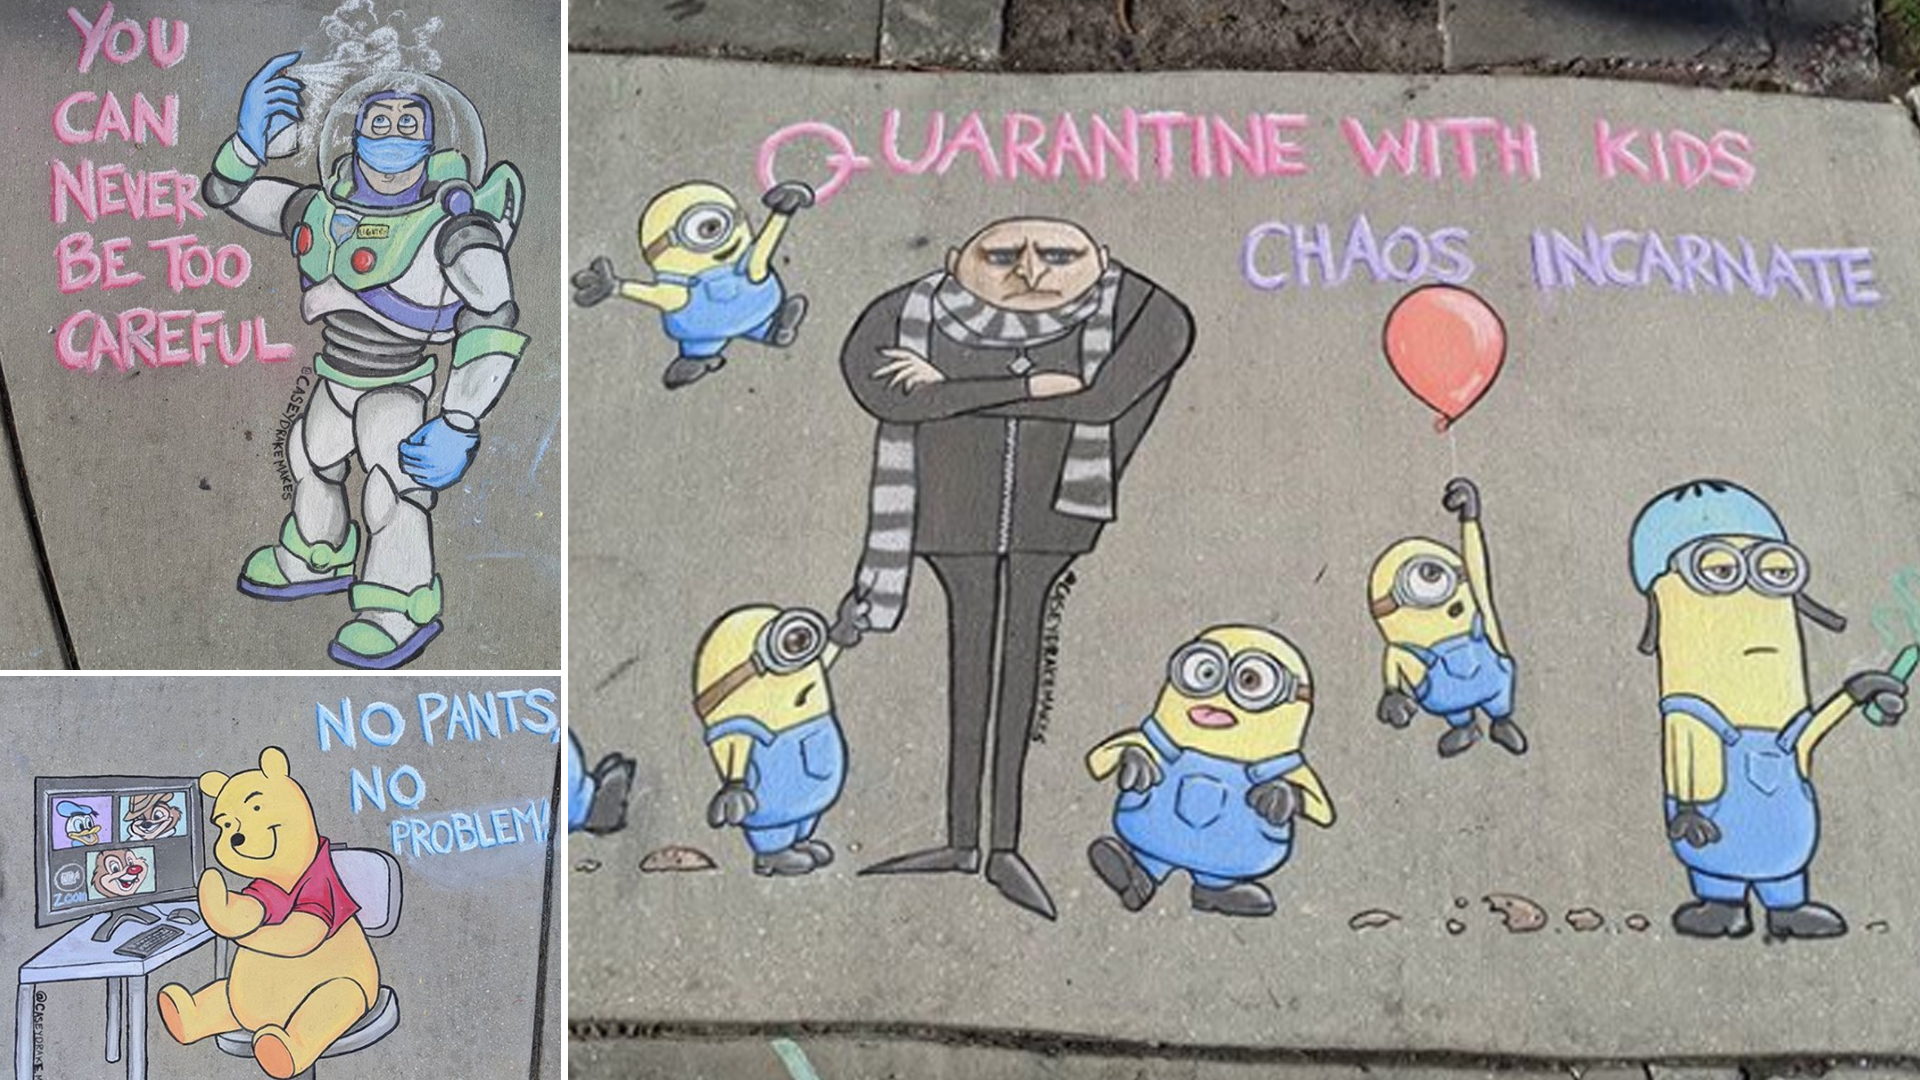 Chalk drawings on the sidewalk.